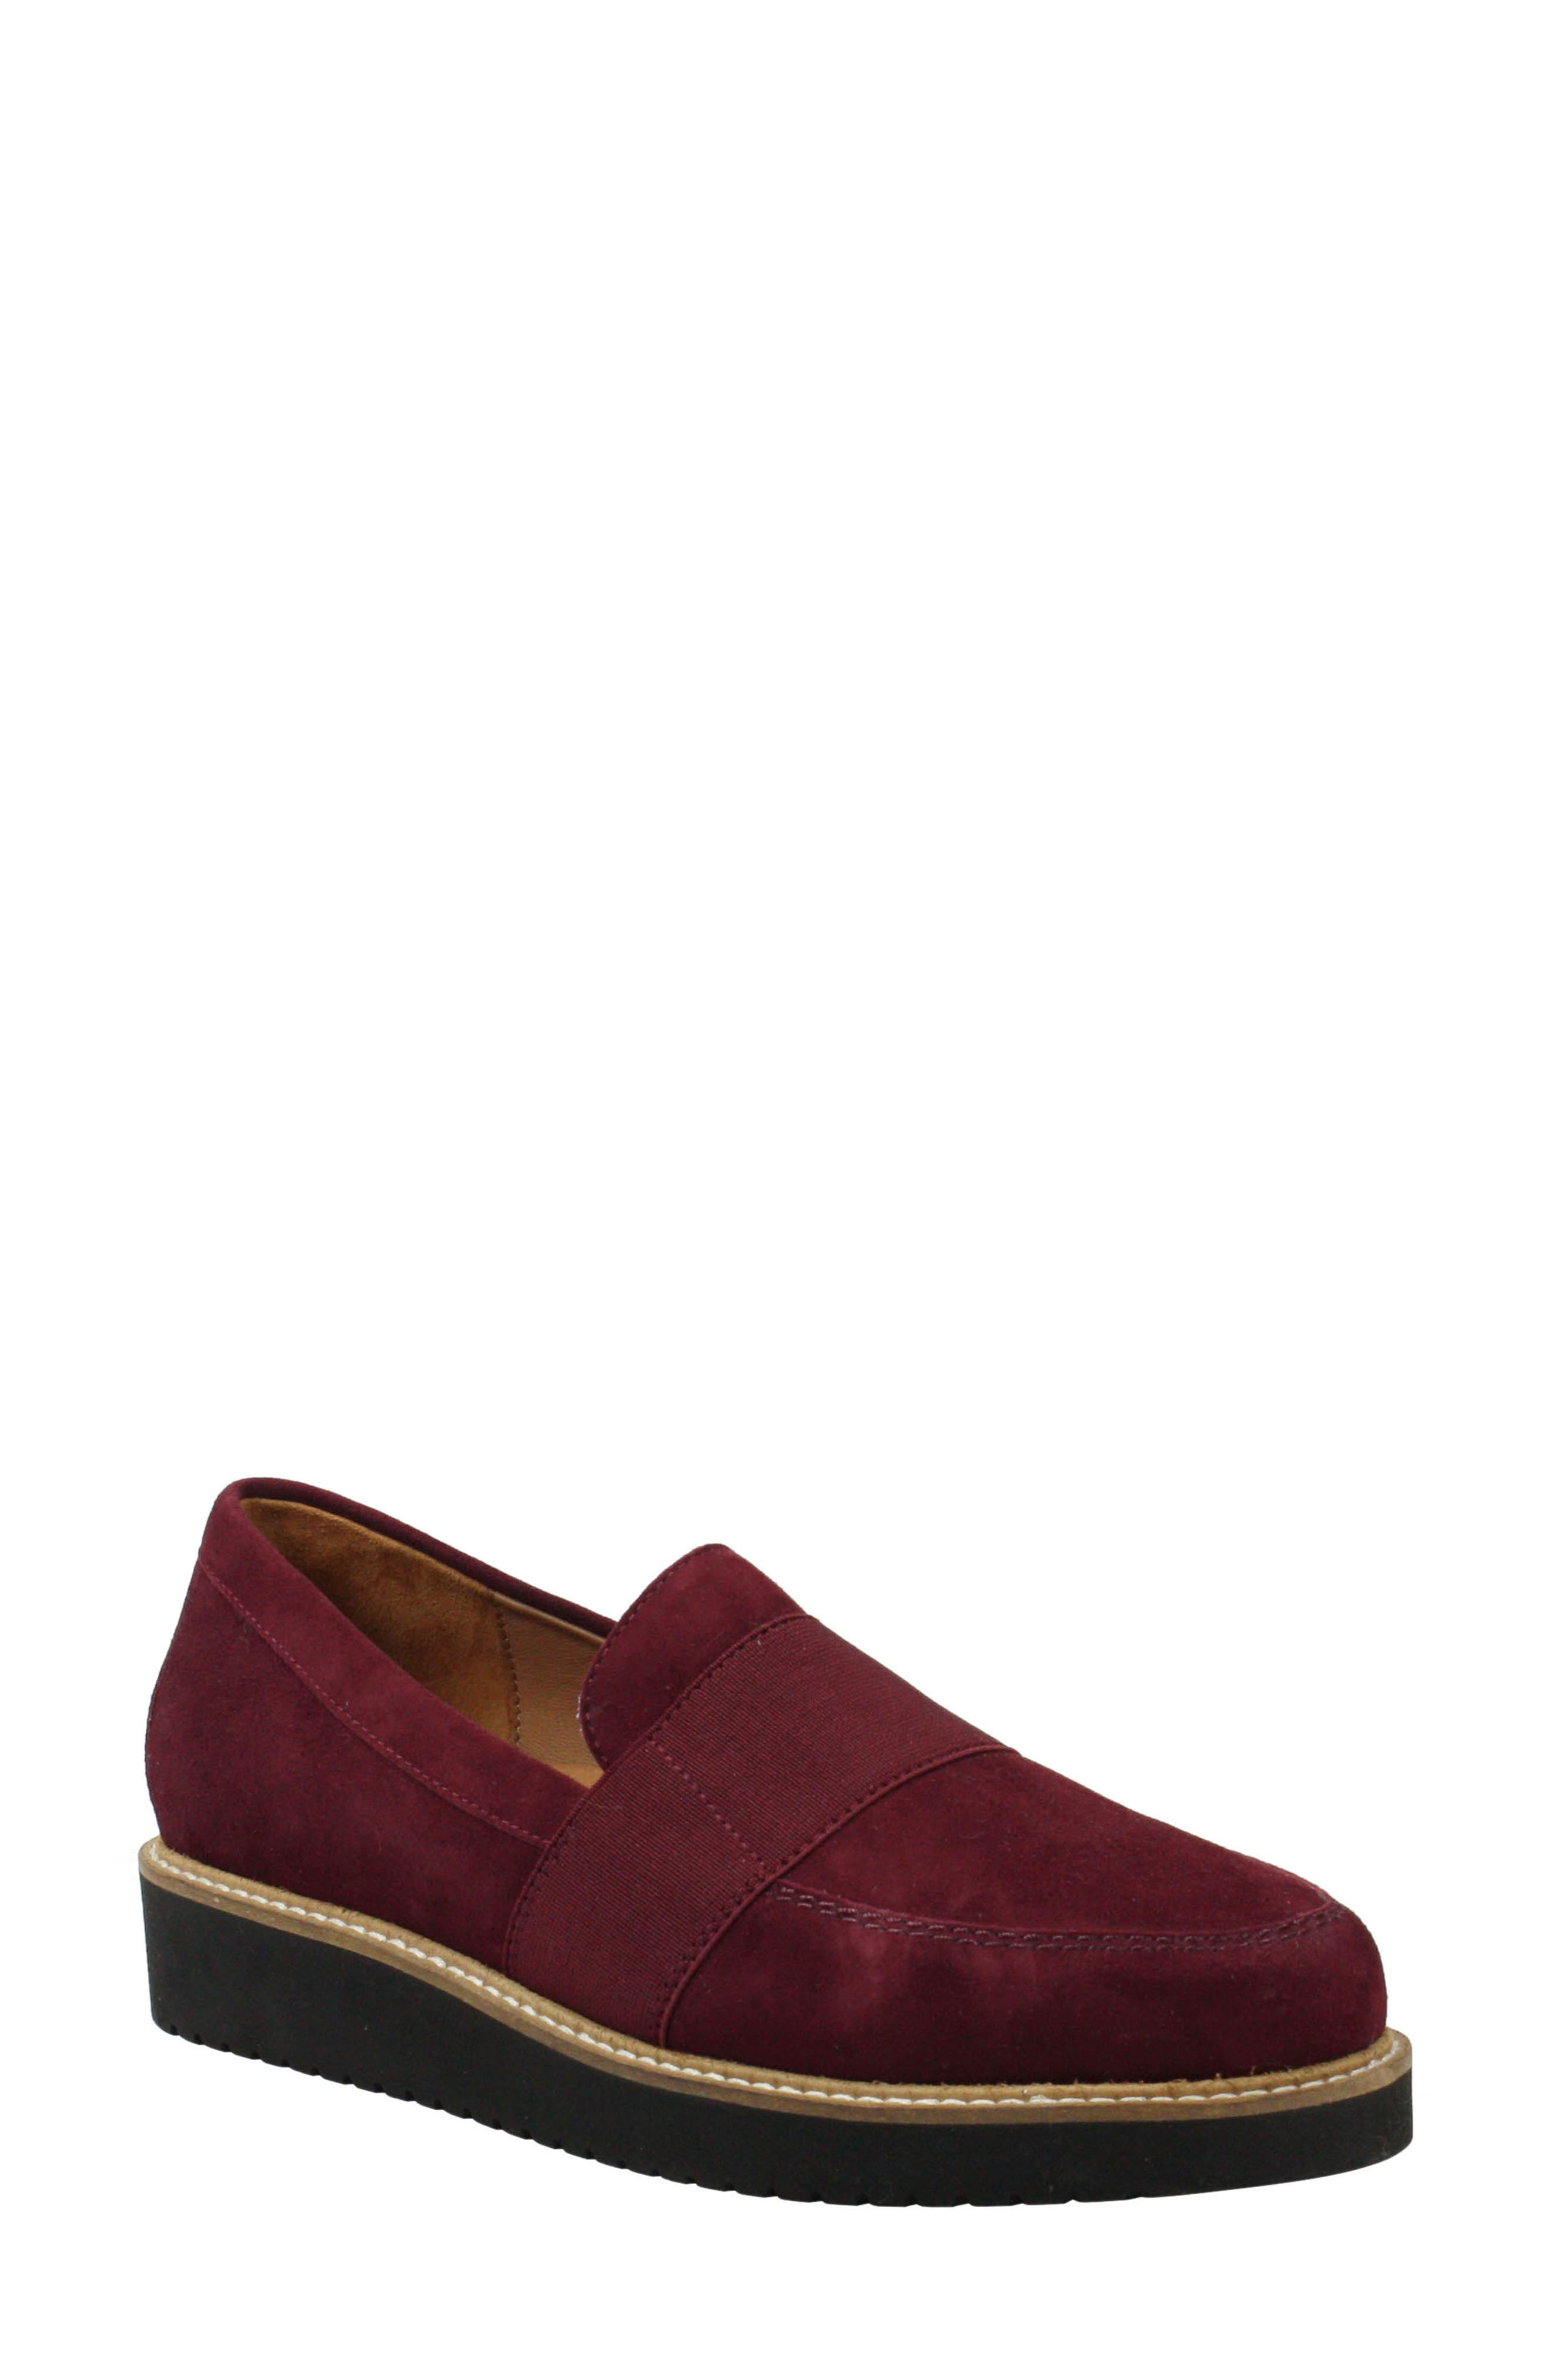 Xanthus Loafer